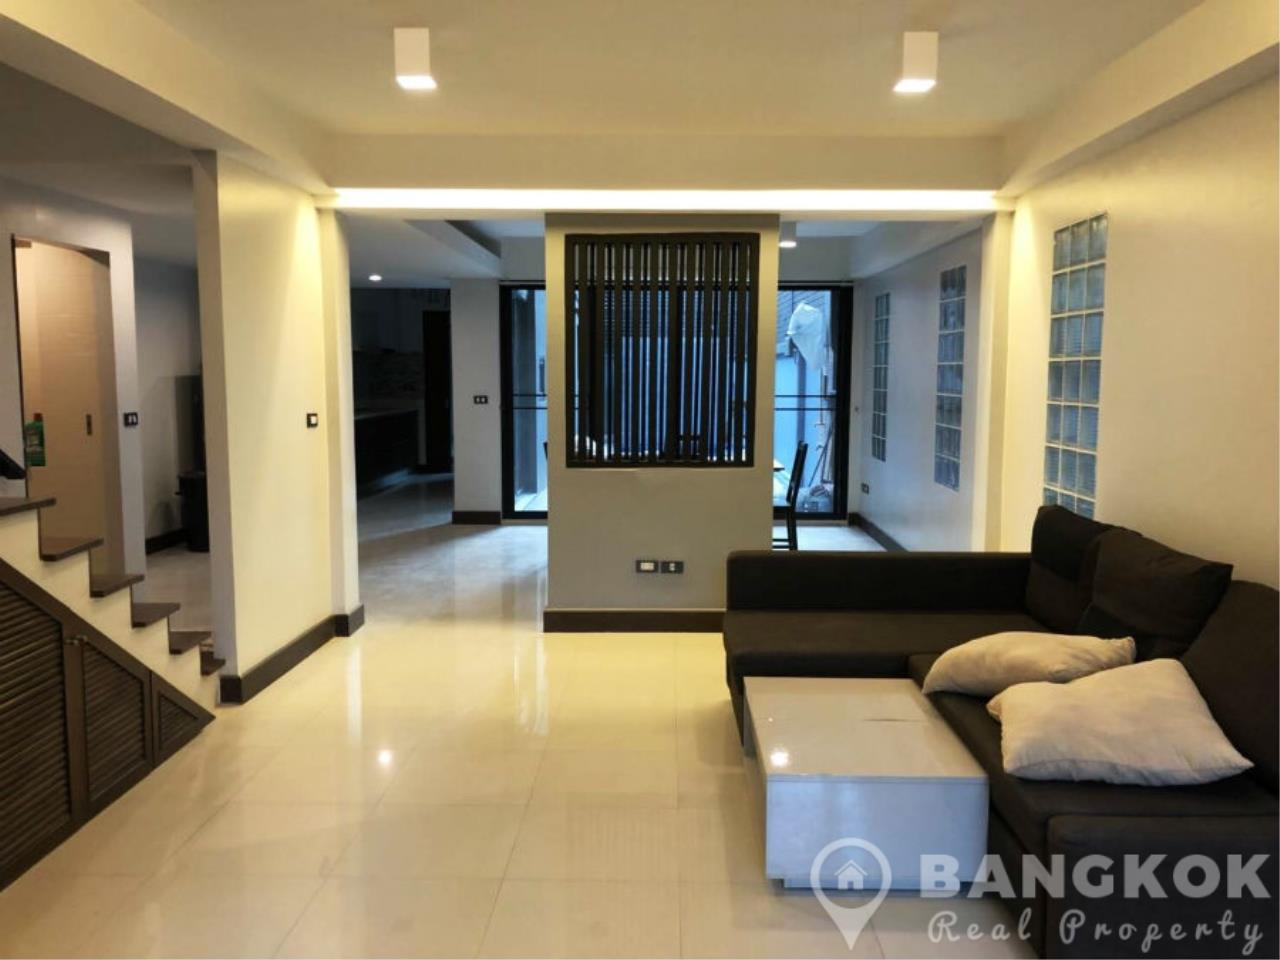 Bangkok Real Property Agency's Modern Detached House in Thonglor 4 Beds with Private Swimming Pool 1